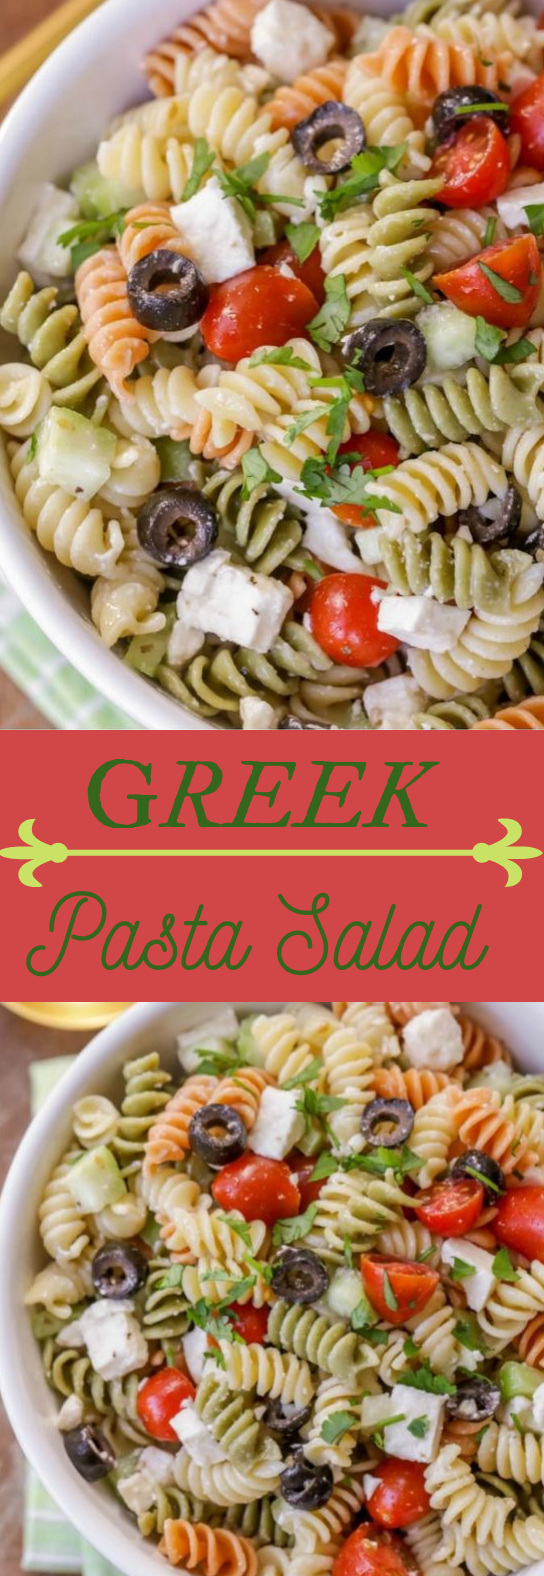 GREEK PASTA SALAD #diet #salad